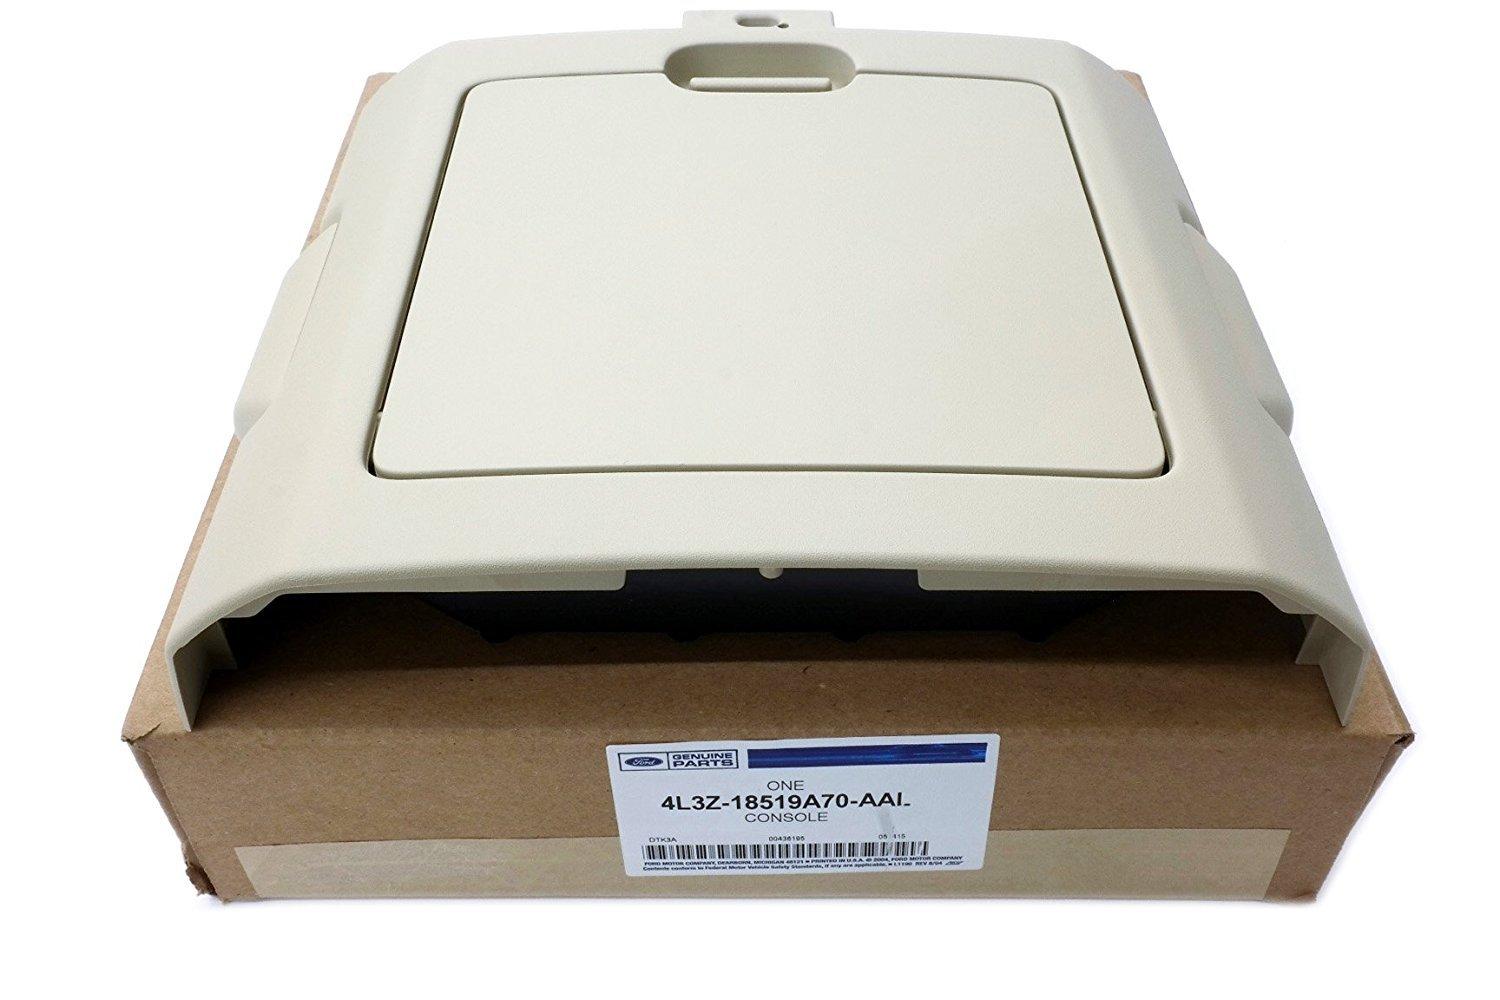 Ford Genuine 4L3Z-18519A70-AAL Overhead Console Assembly by Ford